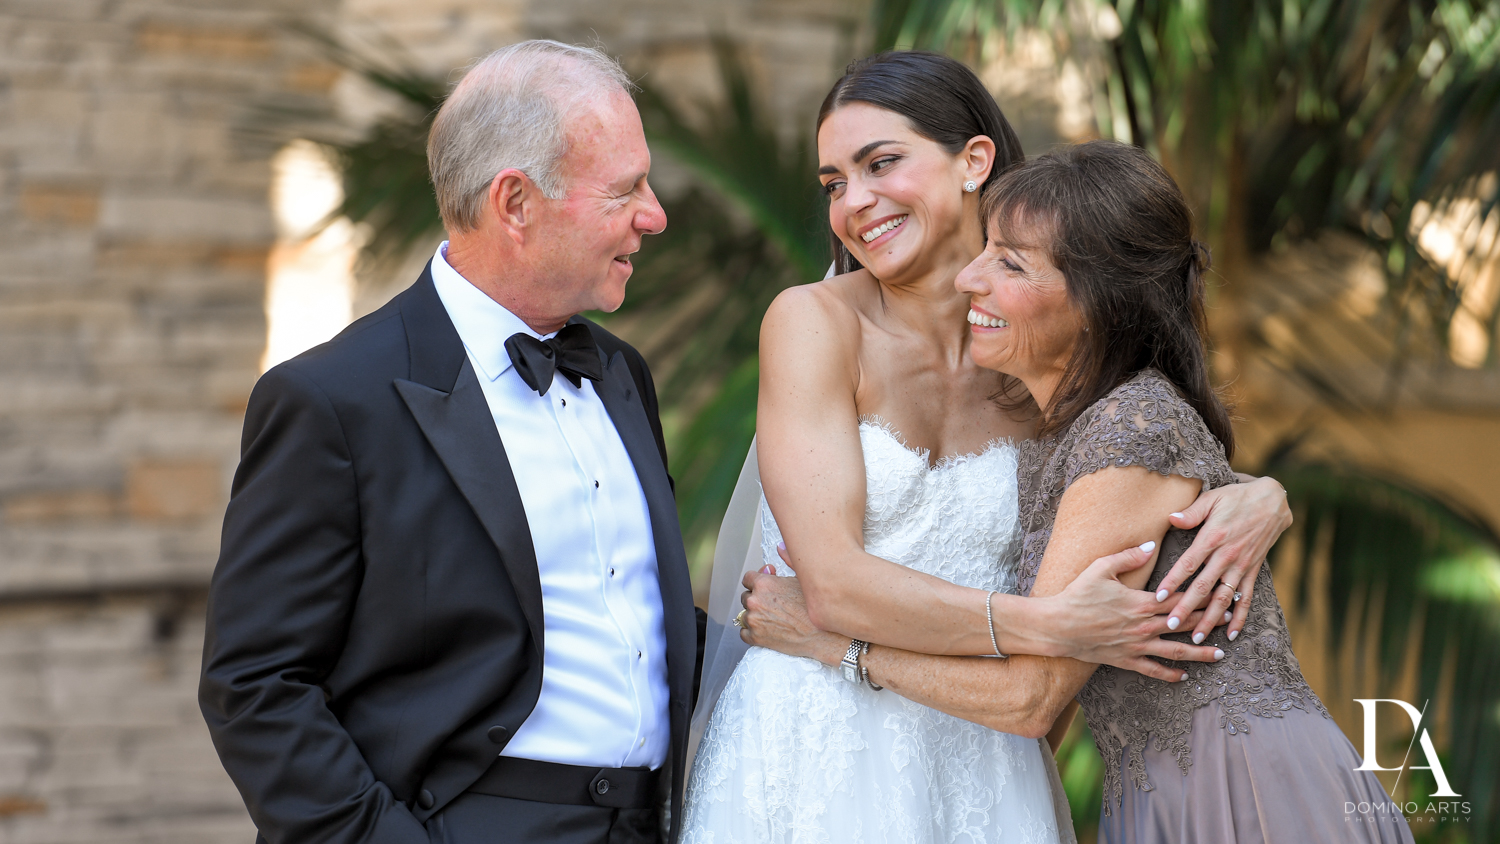 brides parents at Stunning Golf Course Wedding at PGA National Palm Beach by Domino Arts Photography